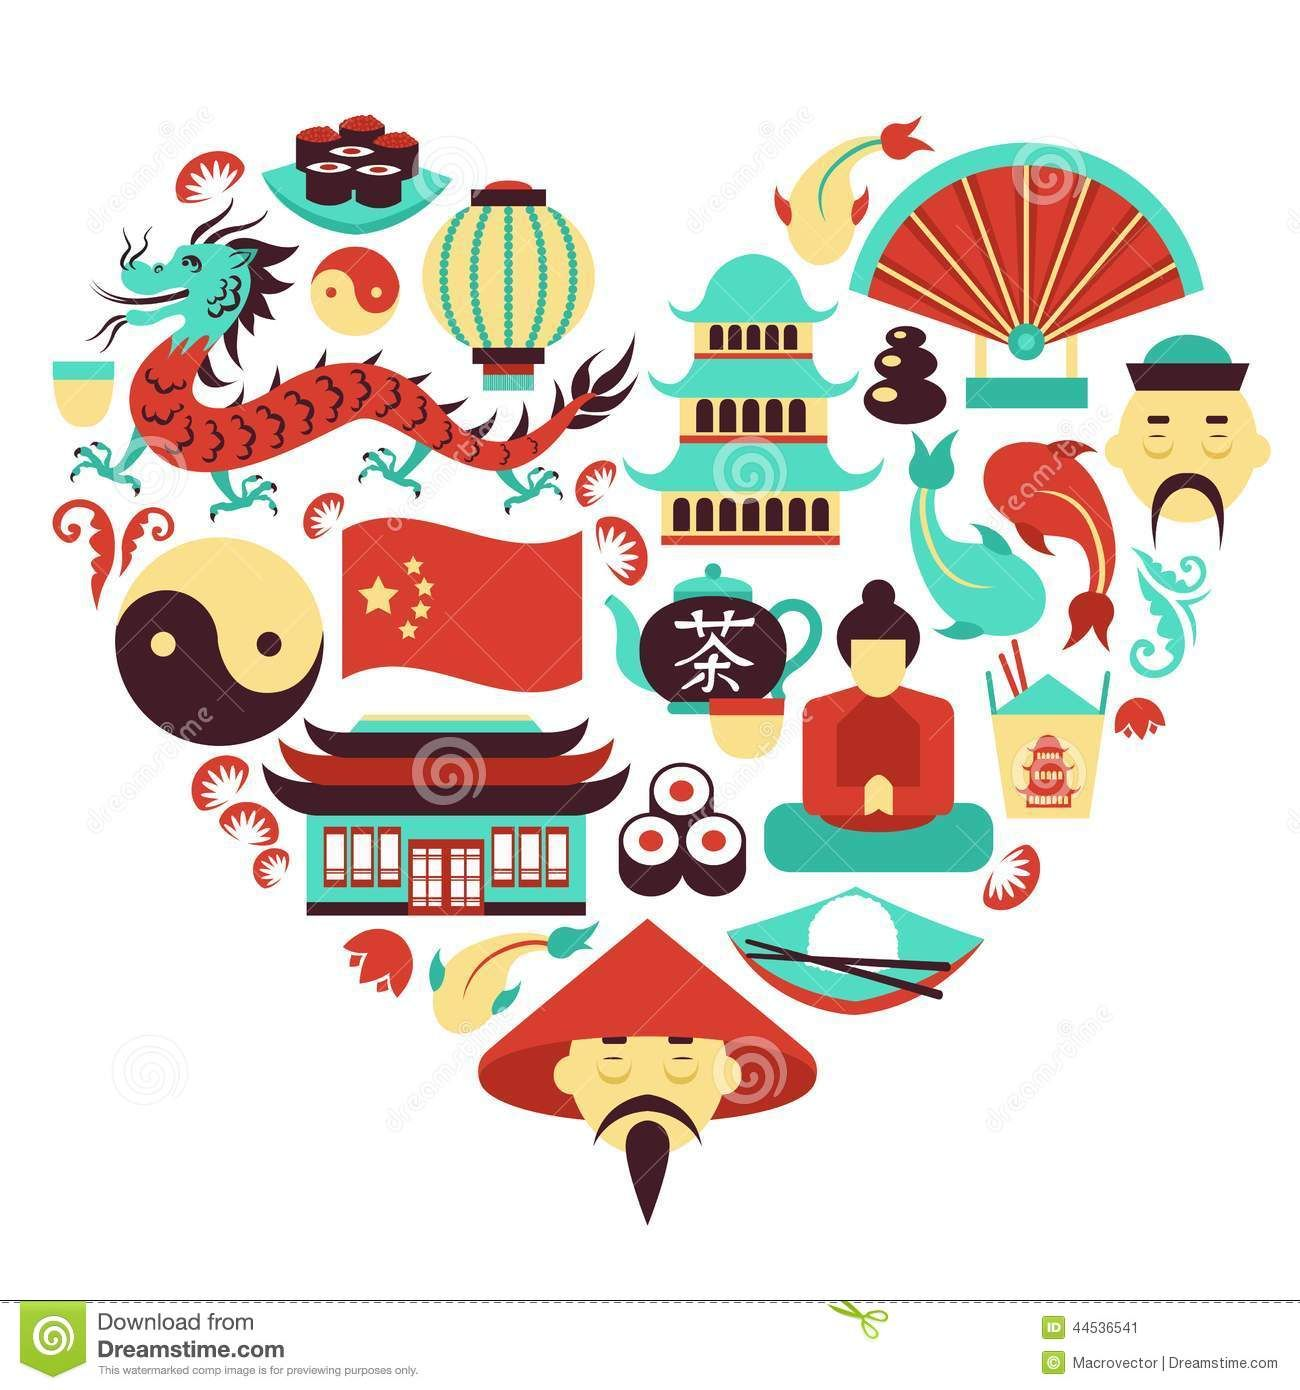 China symbols heart stock vector image 44536541 egypt china symbols heart by macrovector china travel asian traditional culture symbols in heart shape vector illustration editable eps and render in jpg format biocorpaavc Gallery